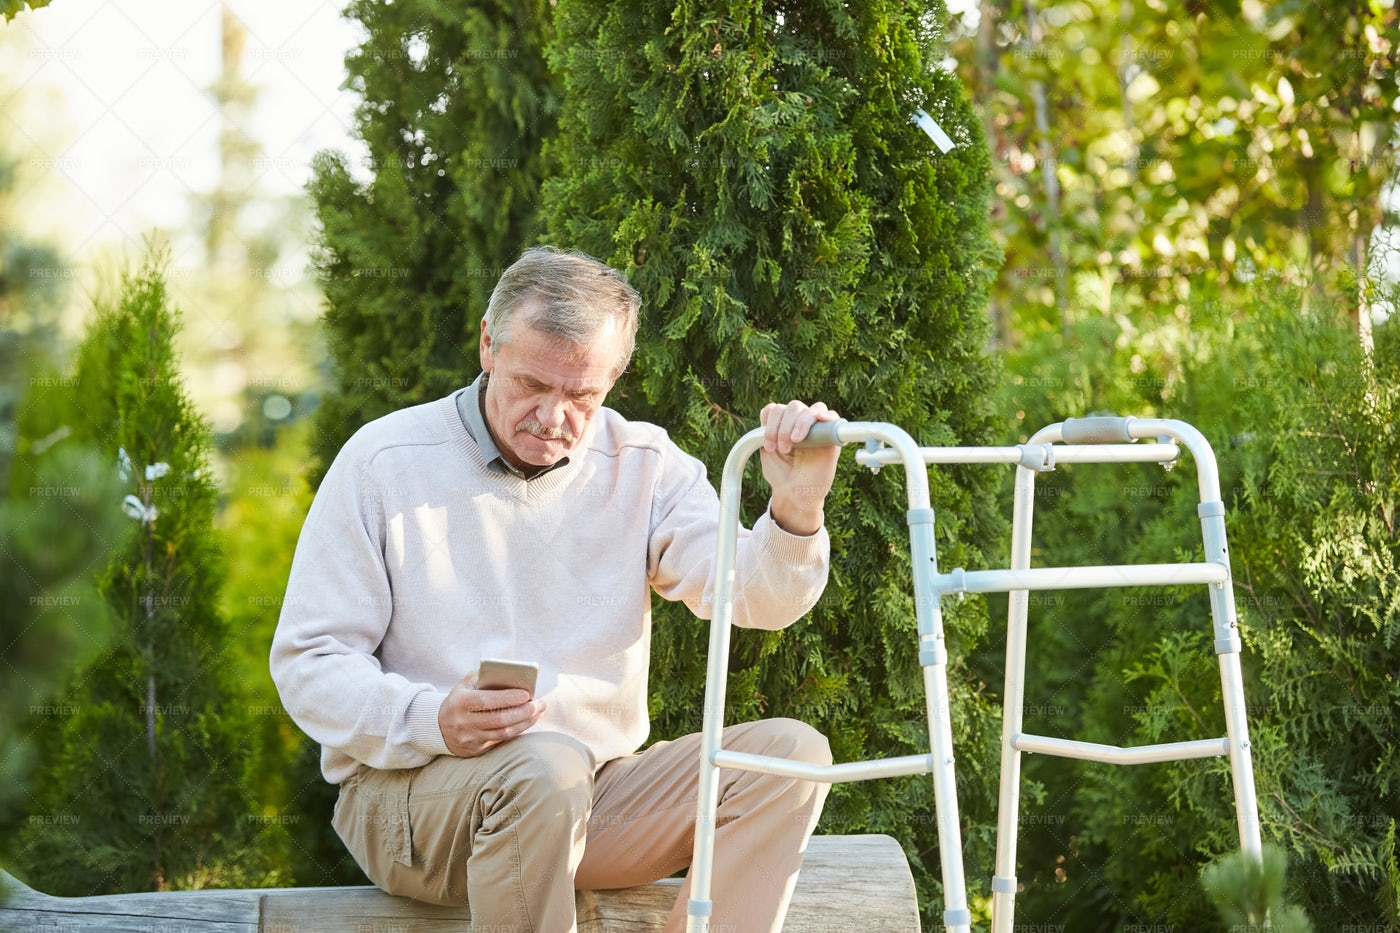 Senior Man With Walker Resting In...: Stock Photos